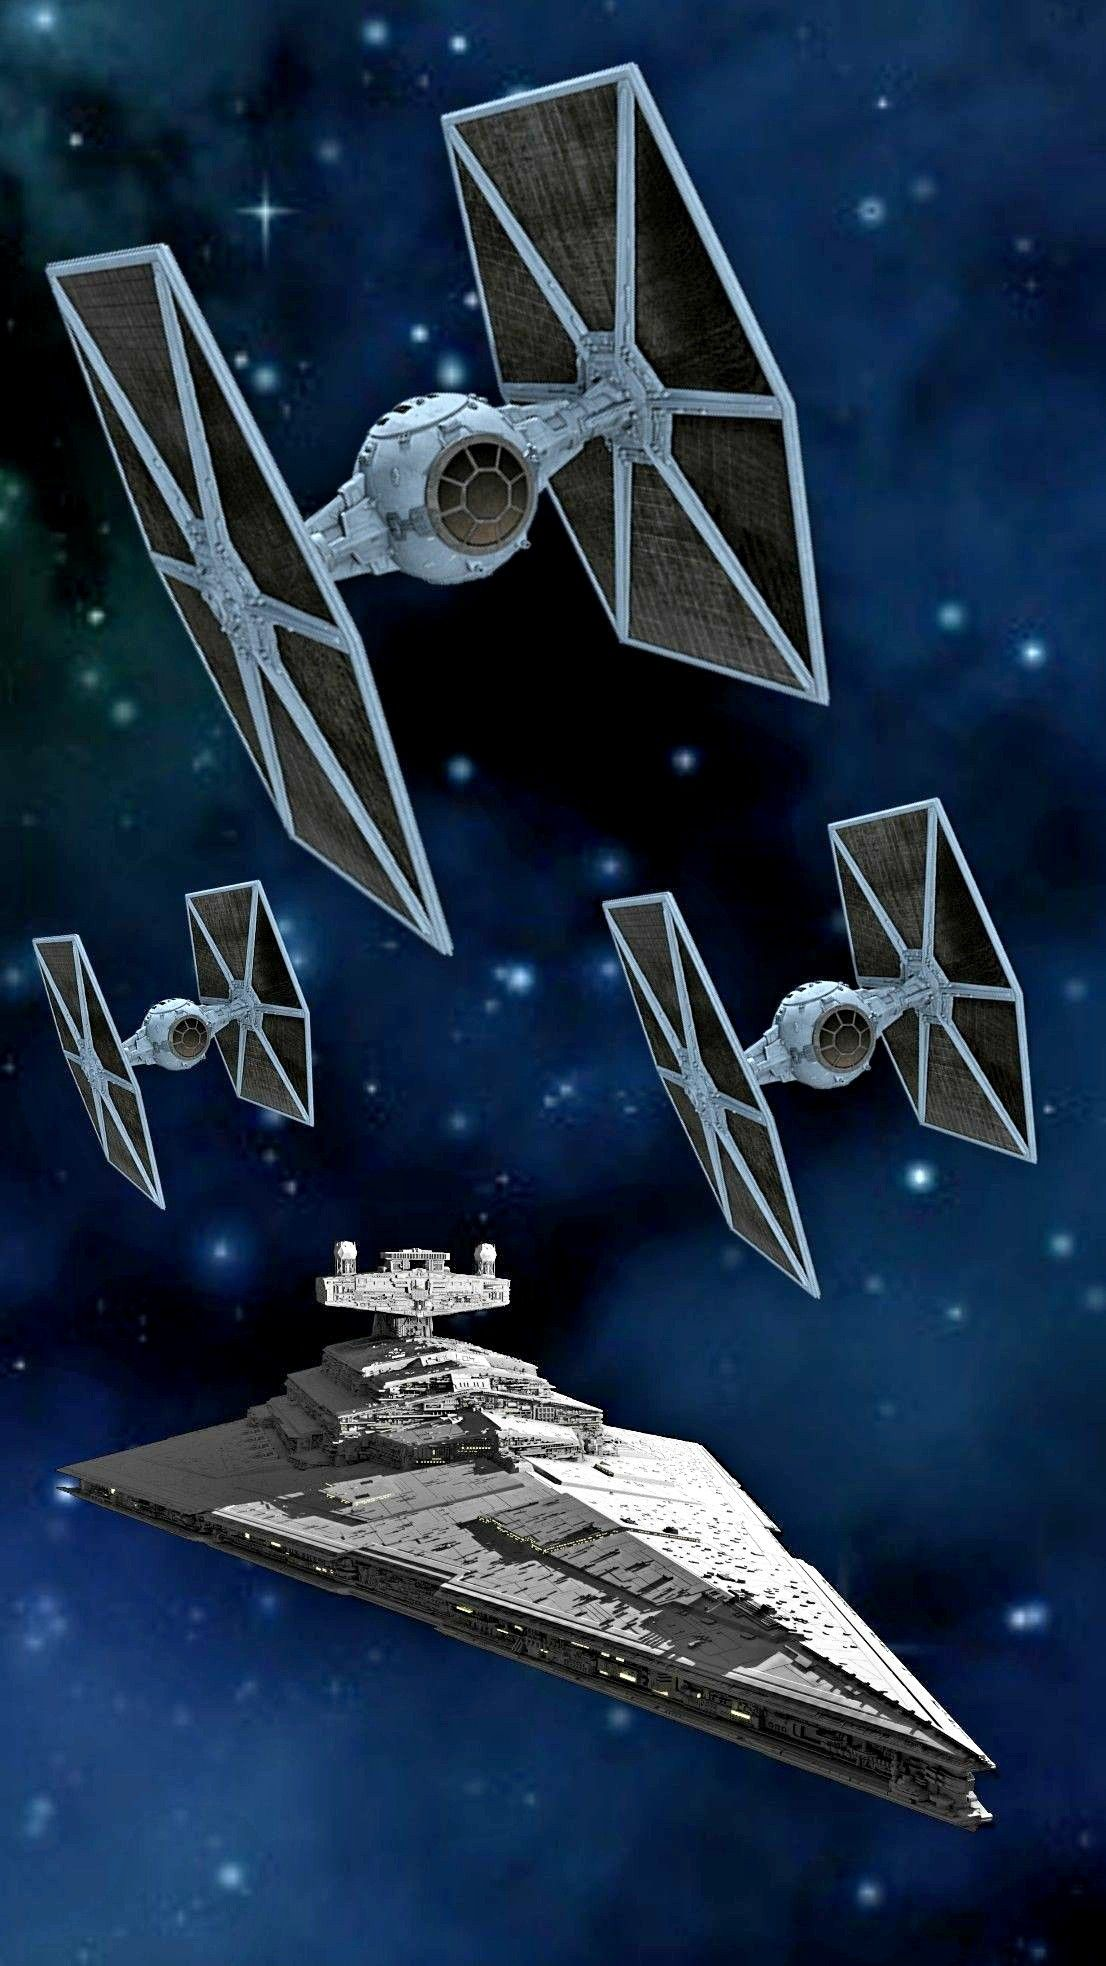 Imperial Star Destroyer sending out 3 Tie fighters. | Sci-Fi ...